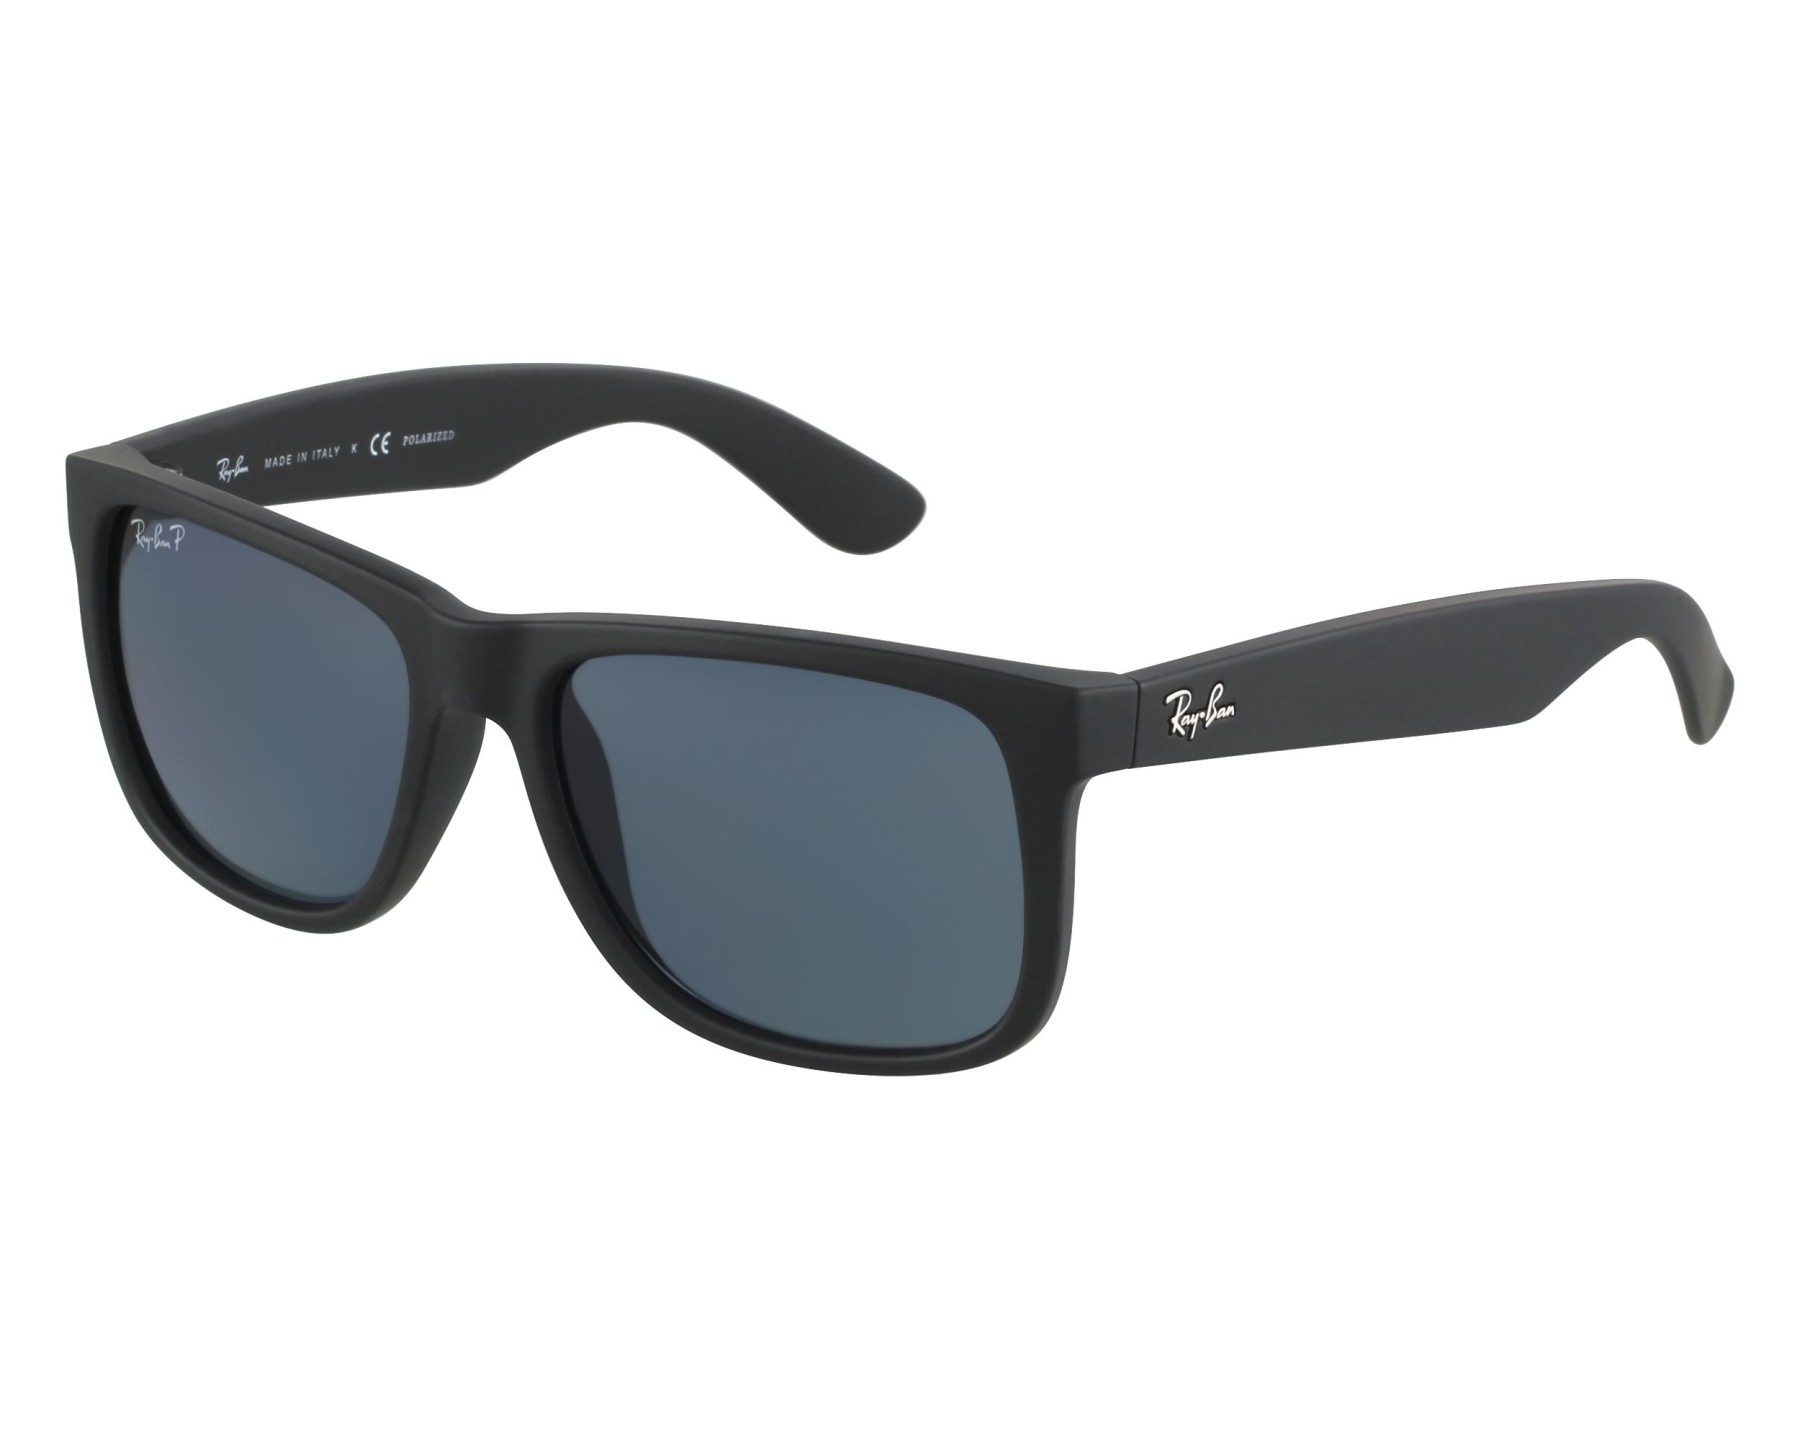 146abde7c16 Sunglasses Ray-Ban RB-4165 622 2V 55-16 Black front view